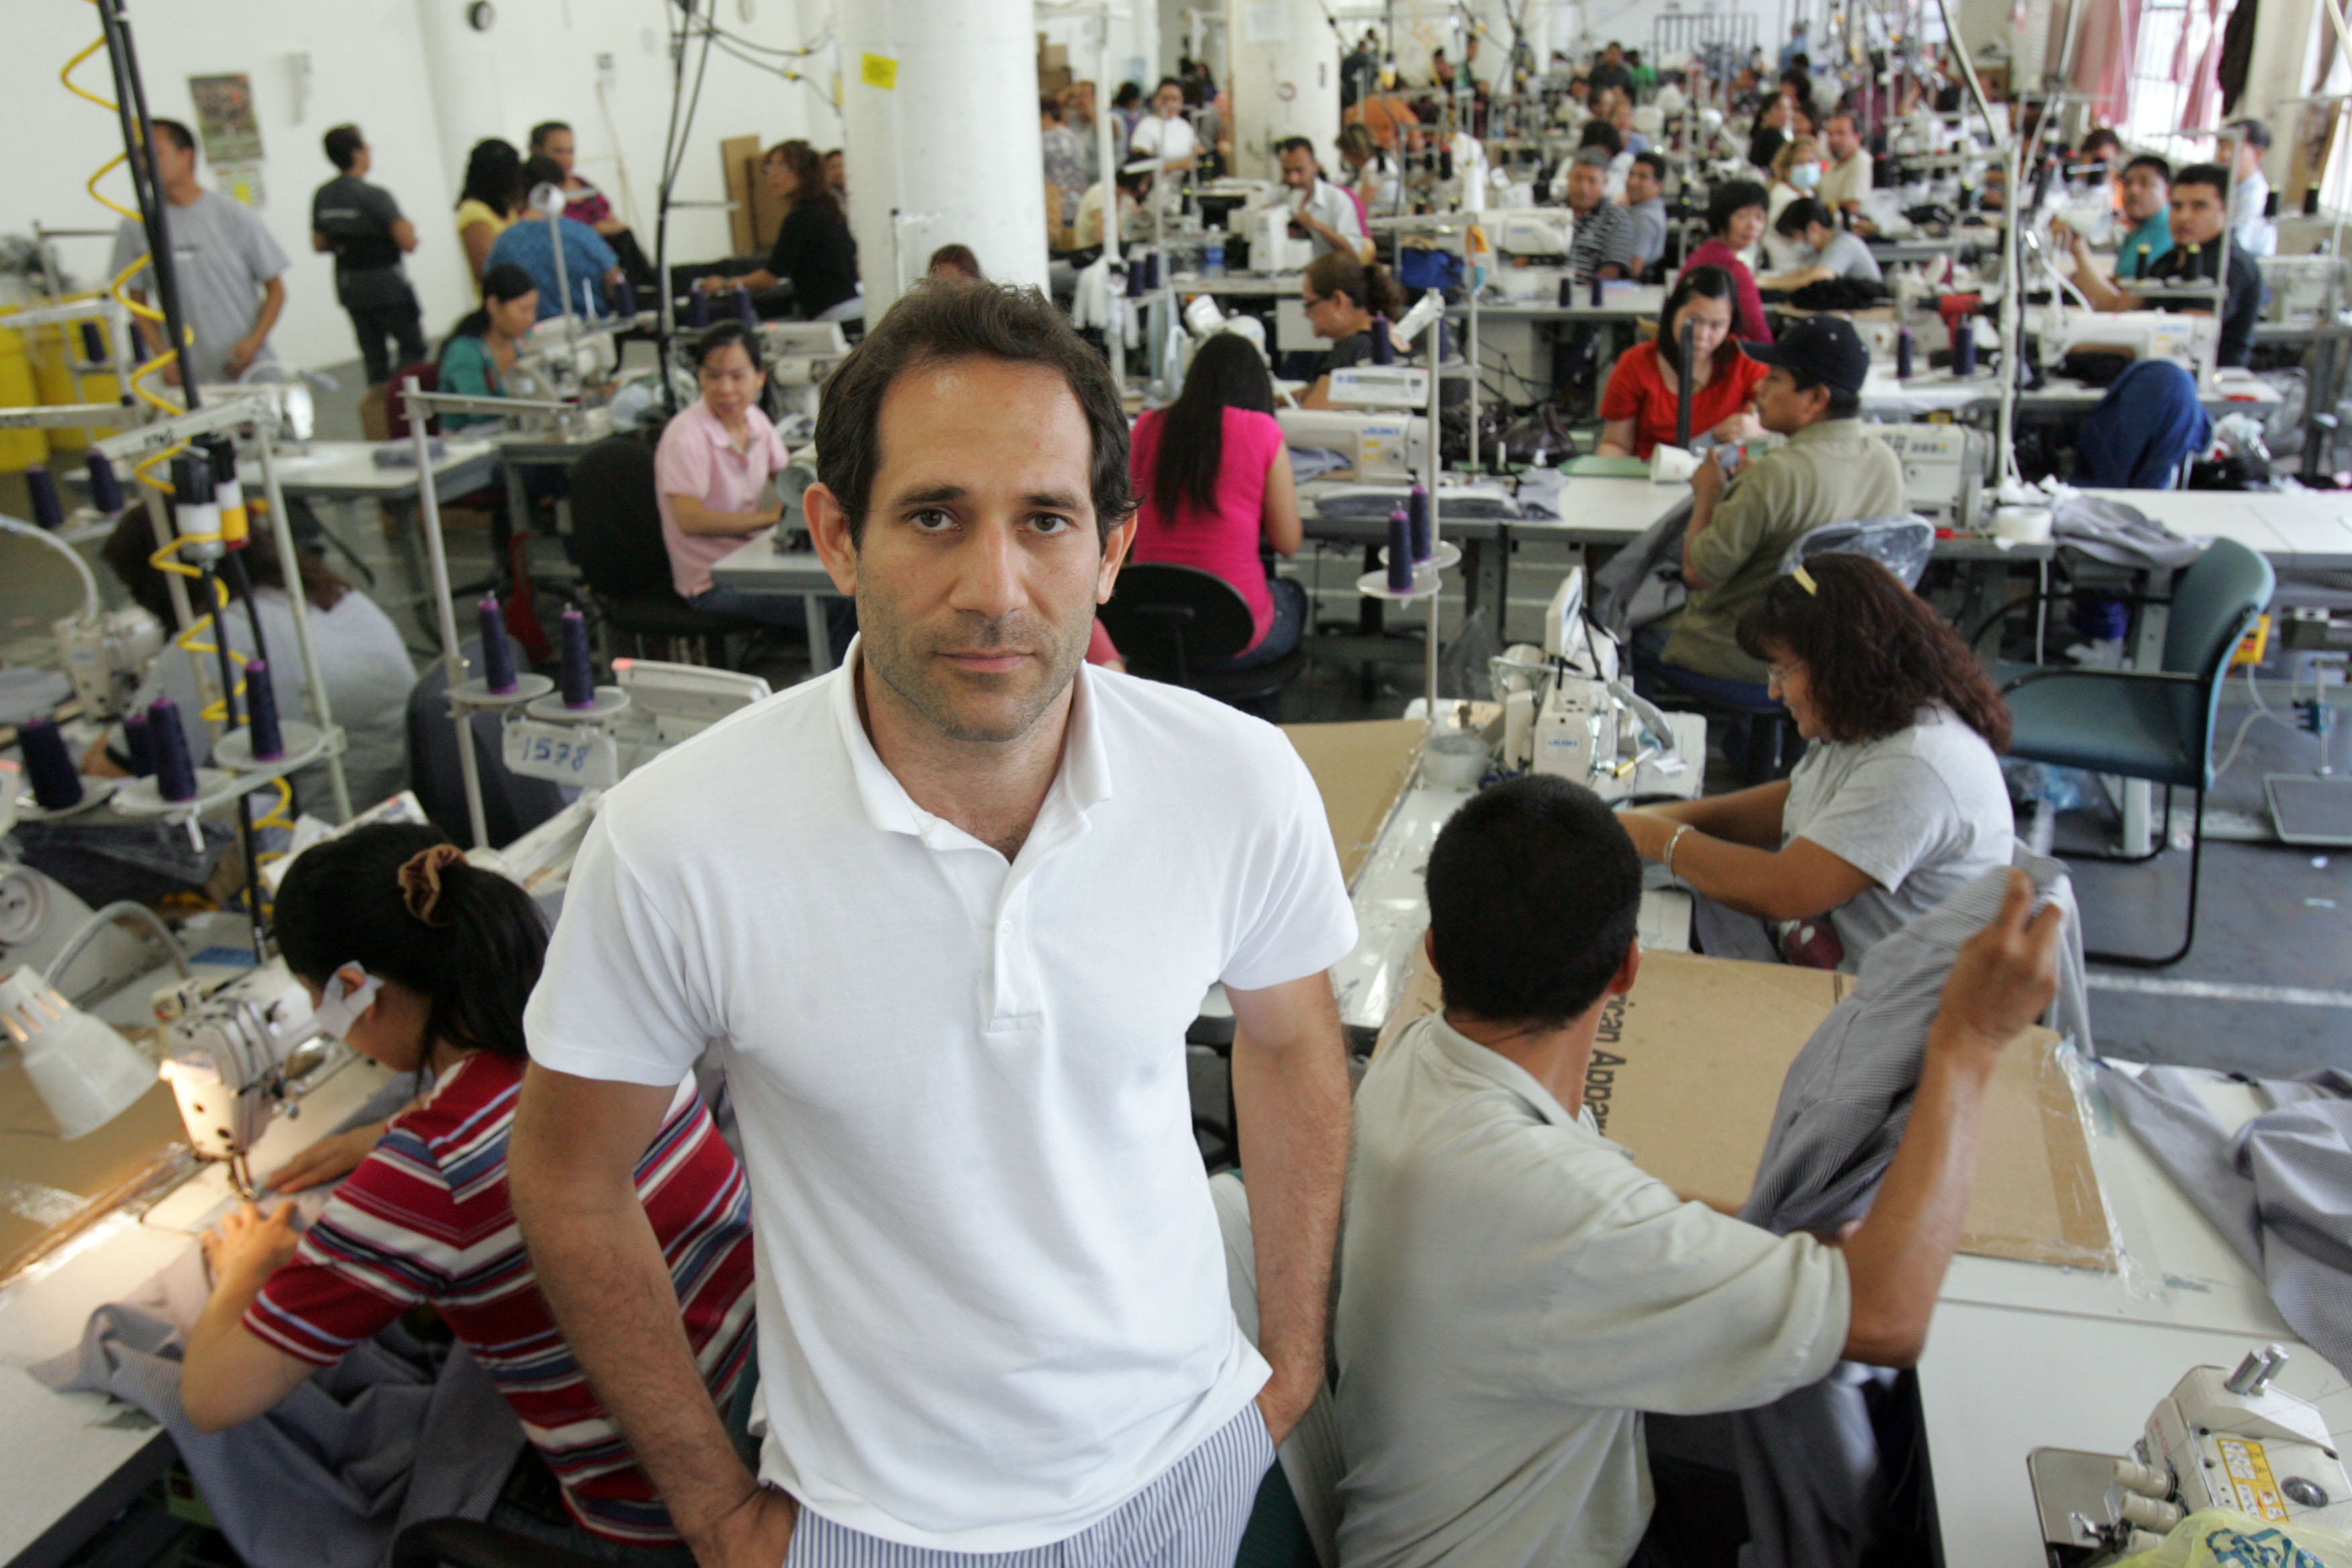 American Apparel ousted its CEO, Dov Charney, who has been the target of lawsuits alleging inappropriate sexual conduct with female employees in Los Angeles, California on June 19, 2014